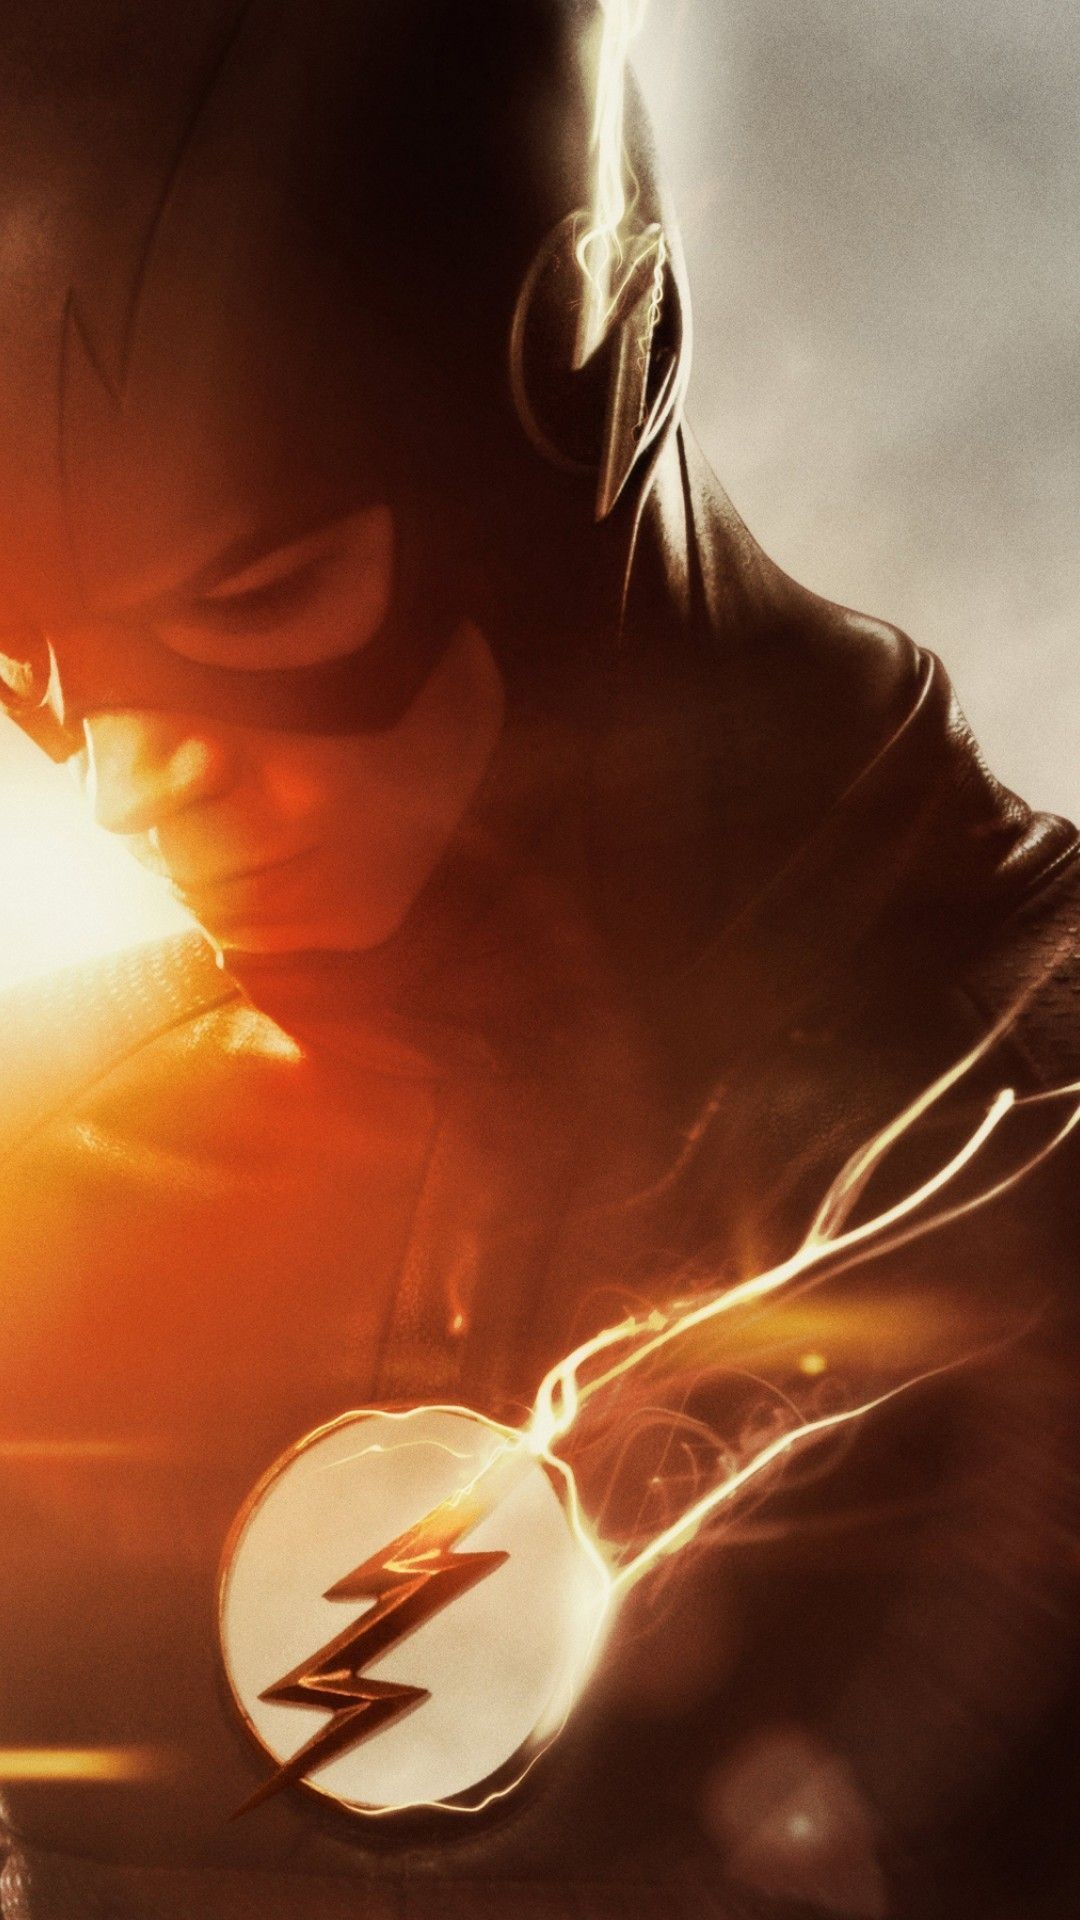 The Flash wallpaper HD background download Mobile iPhone 6s galaxy .